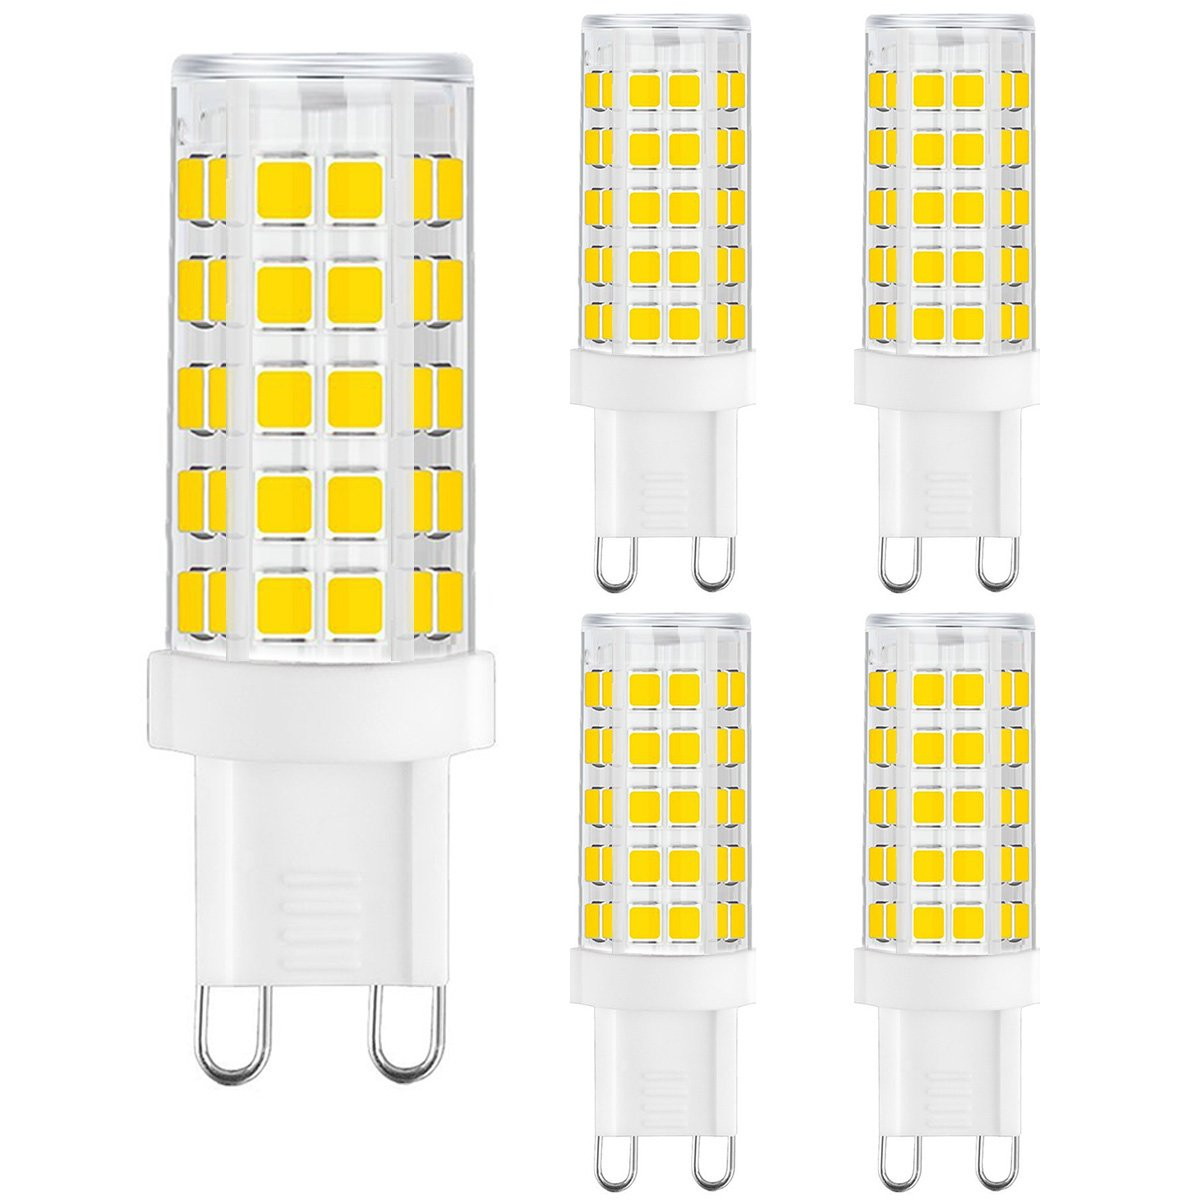 Nice and bright G9 LED bulbs